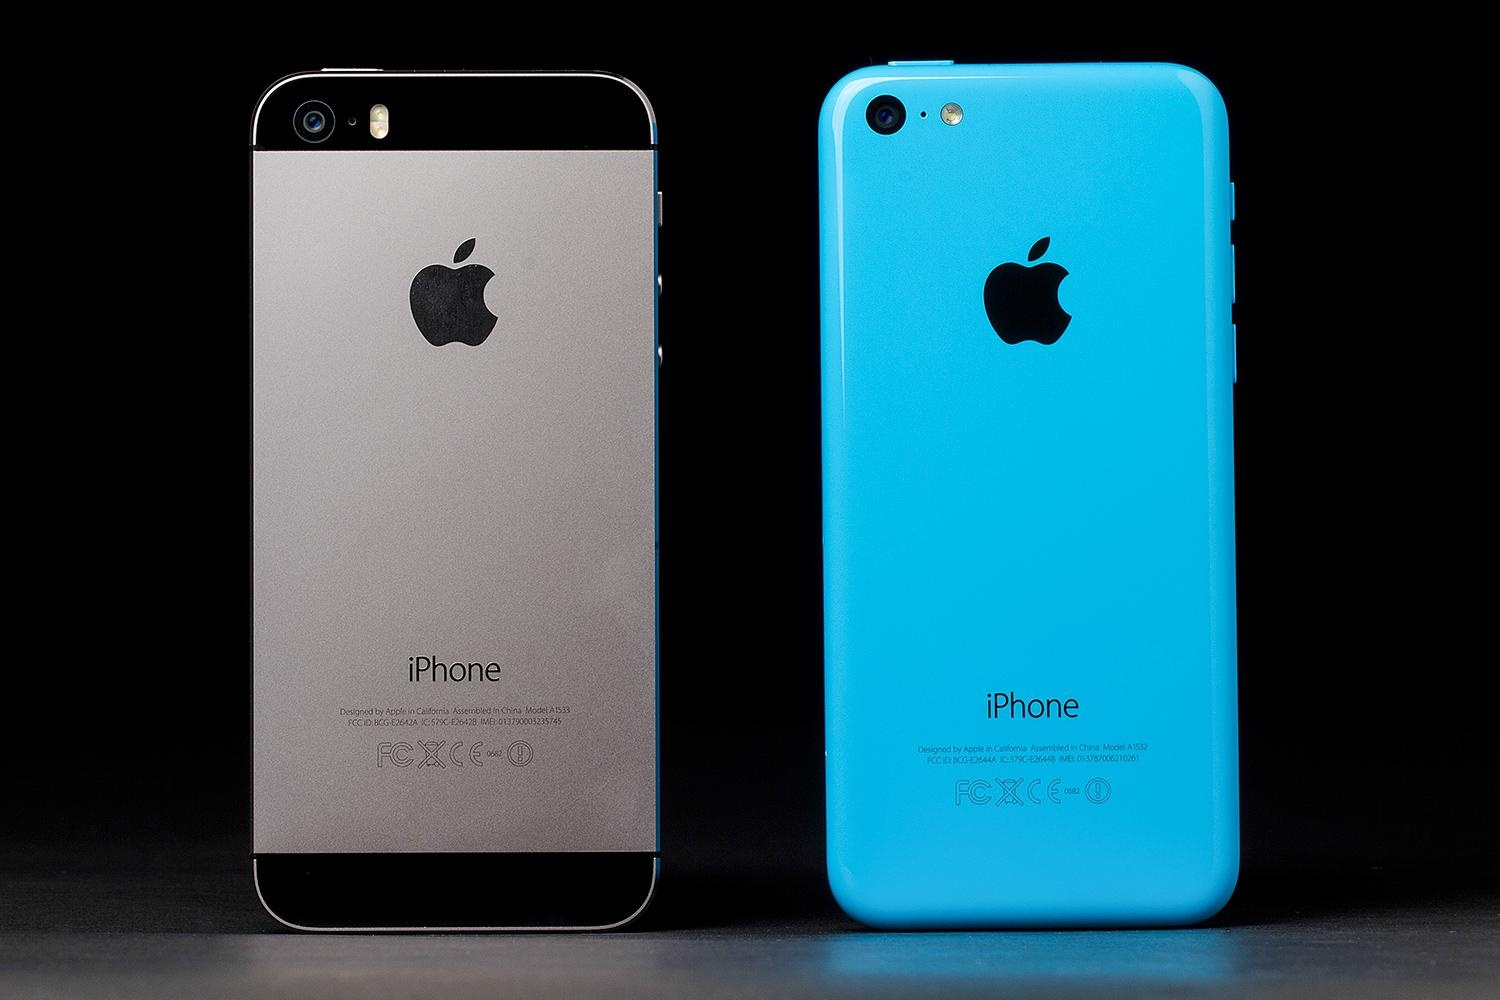 iPhone 5C (specs III): - Radical Hub Iphone 5c